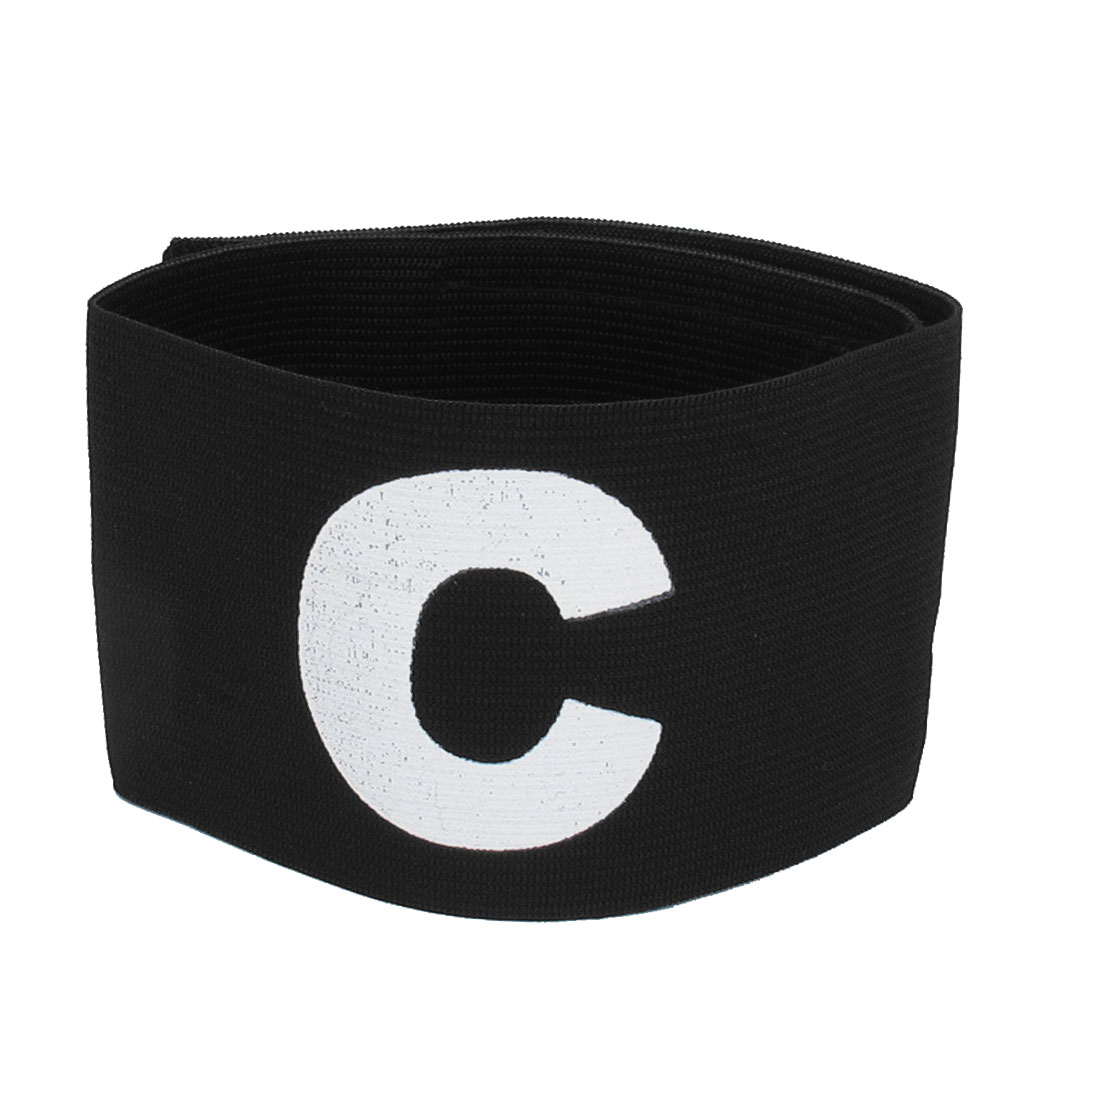 Hook Loop Closure Stretchy C Printed Team Soccer Sports Match Captain Armband Sleeve Black